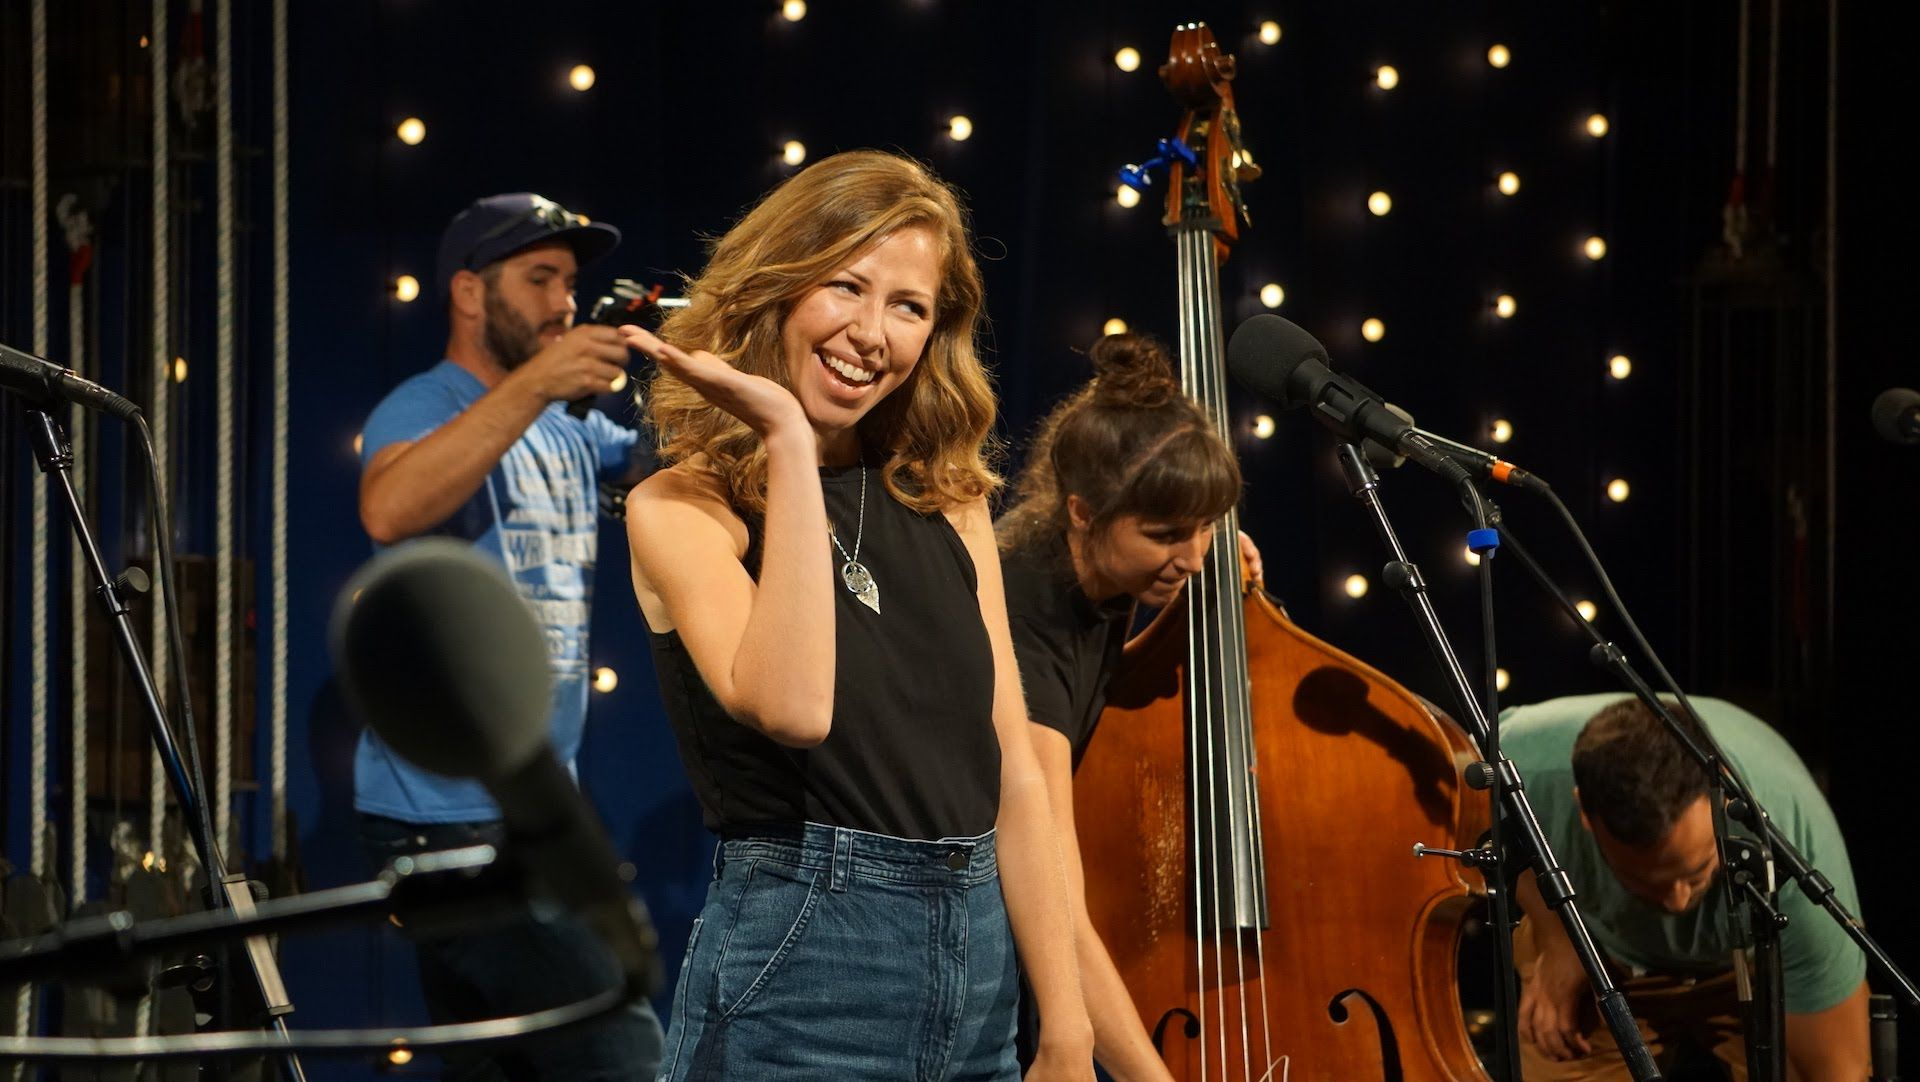 Brooklyn Ny Band Lake Street Dive Performs Three Songs And Is Interviewed By Music Legends Lake Songs